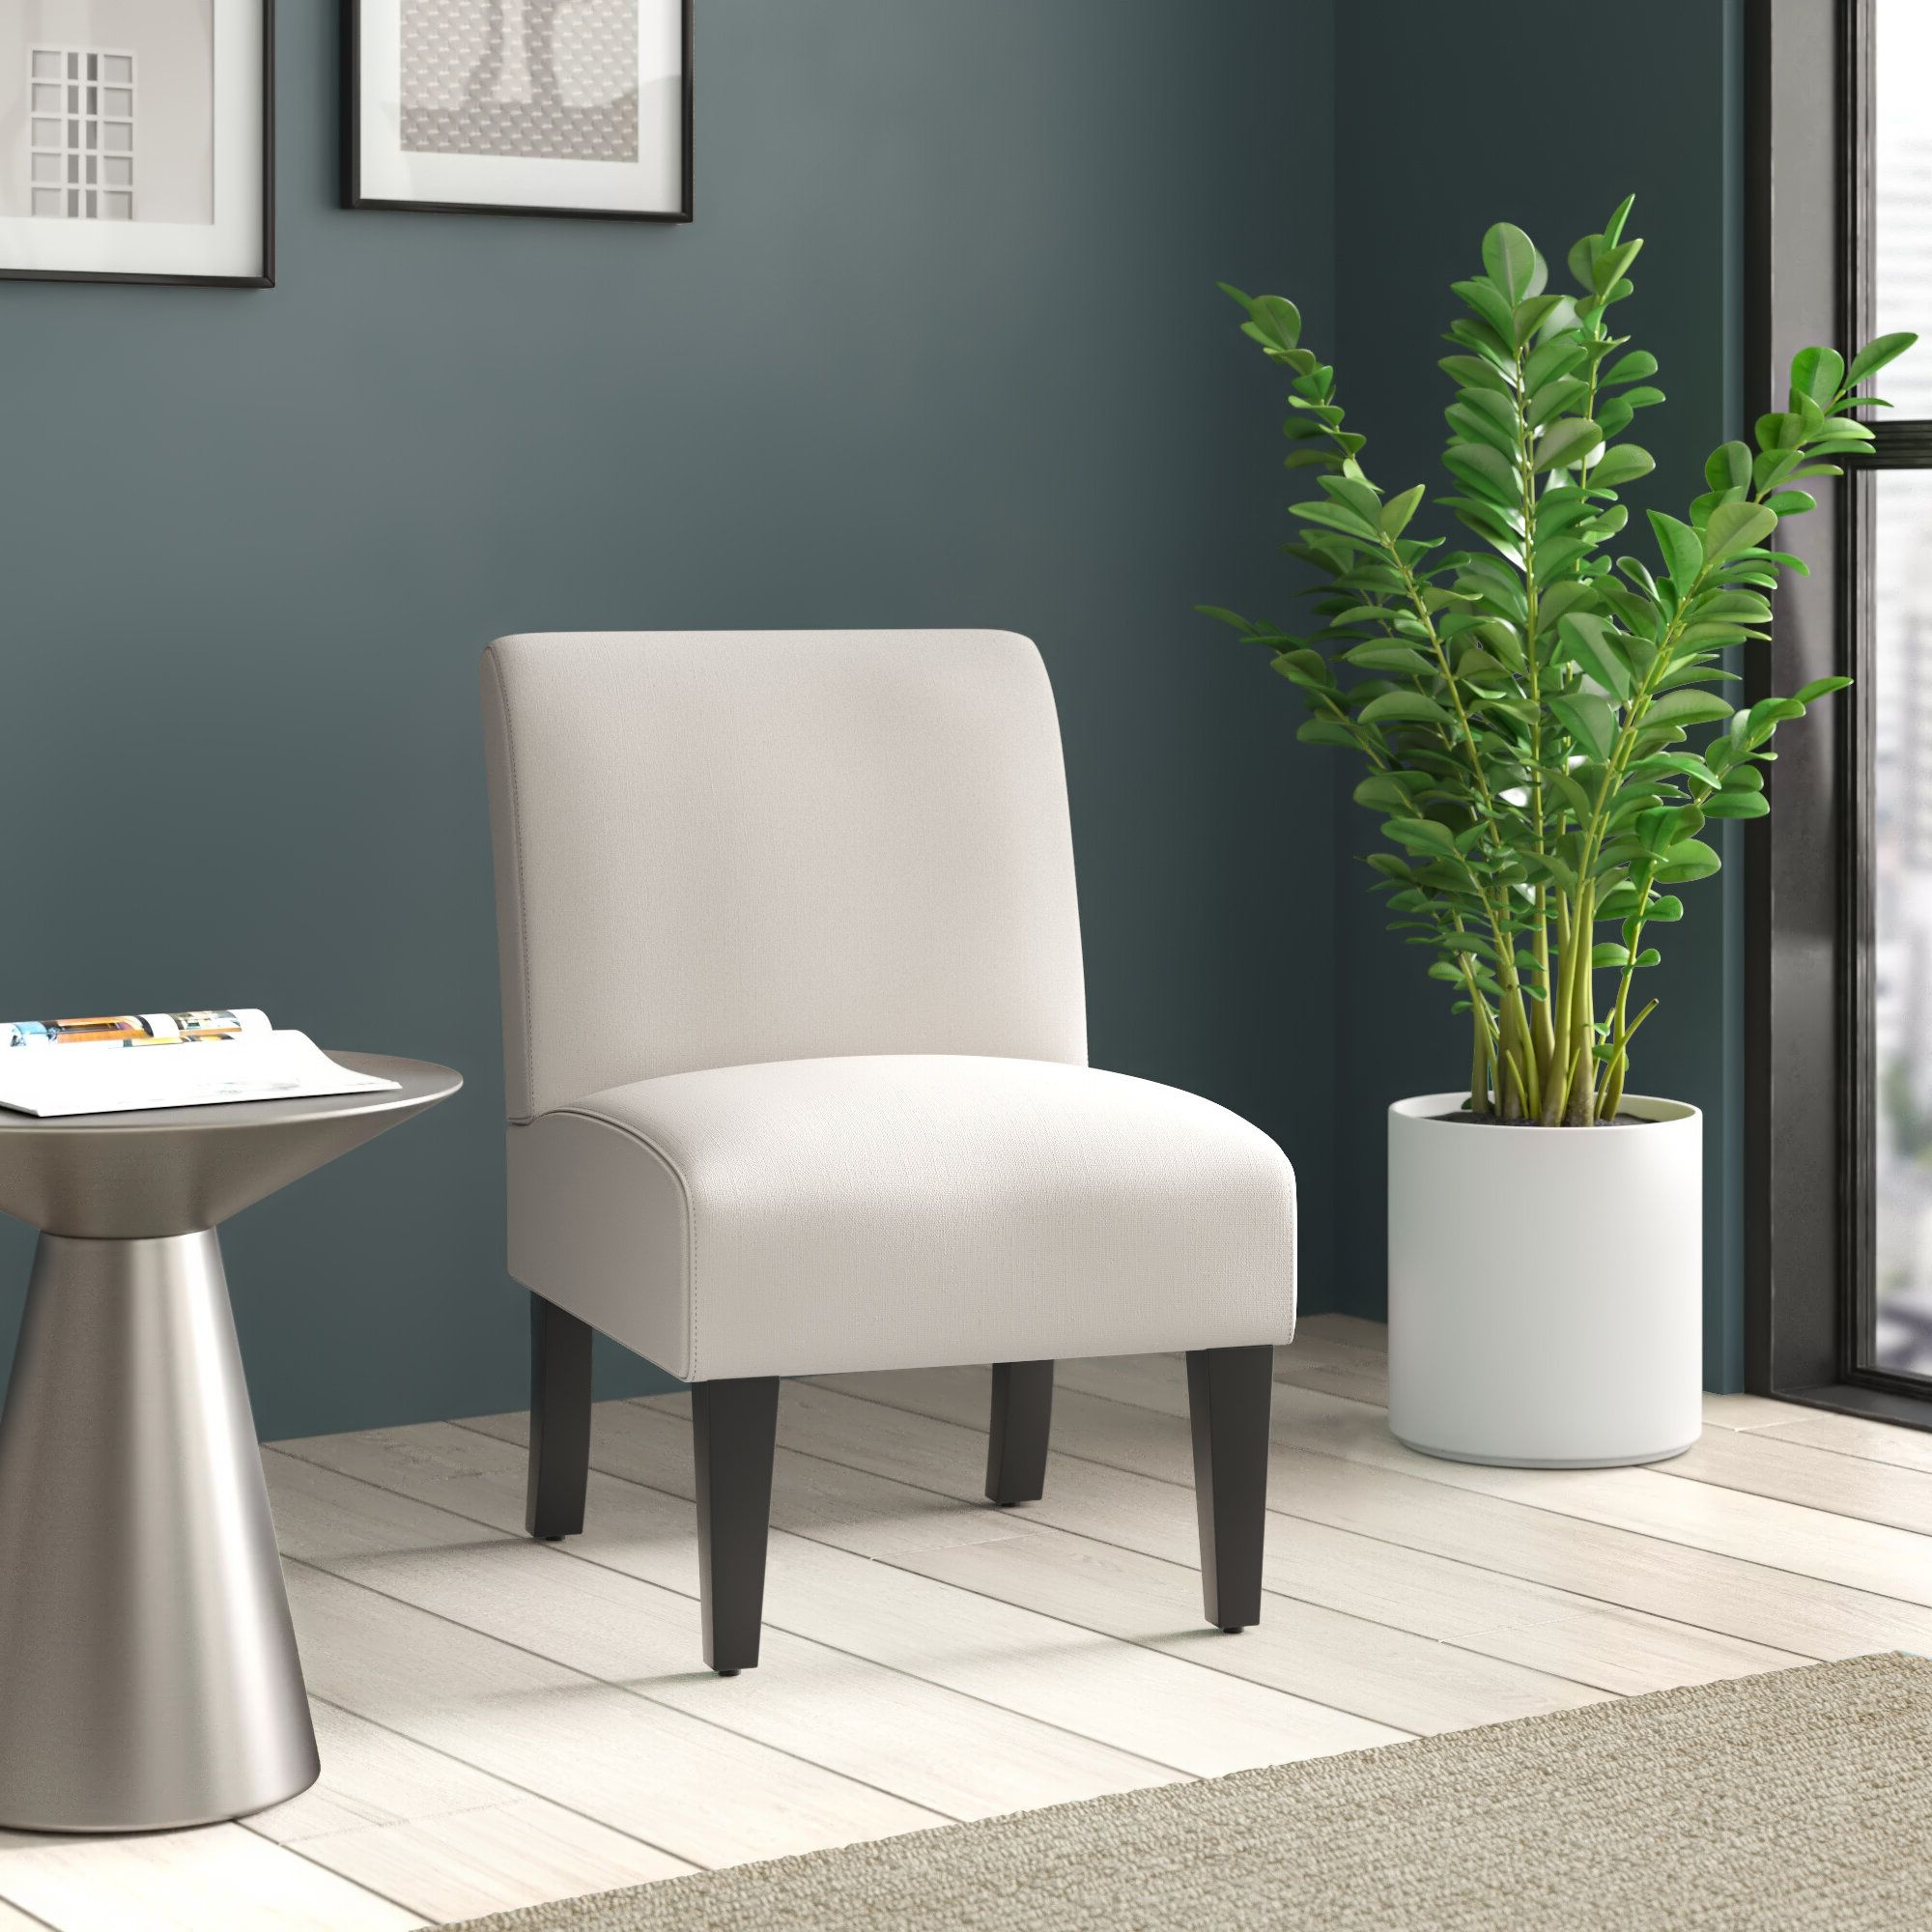 2020 Belleze Armless Contemporary Upholstered Single Curved Throughout Easterling Velvet Slipper Chairs (View 5 of 20)